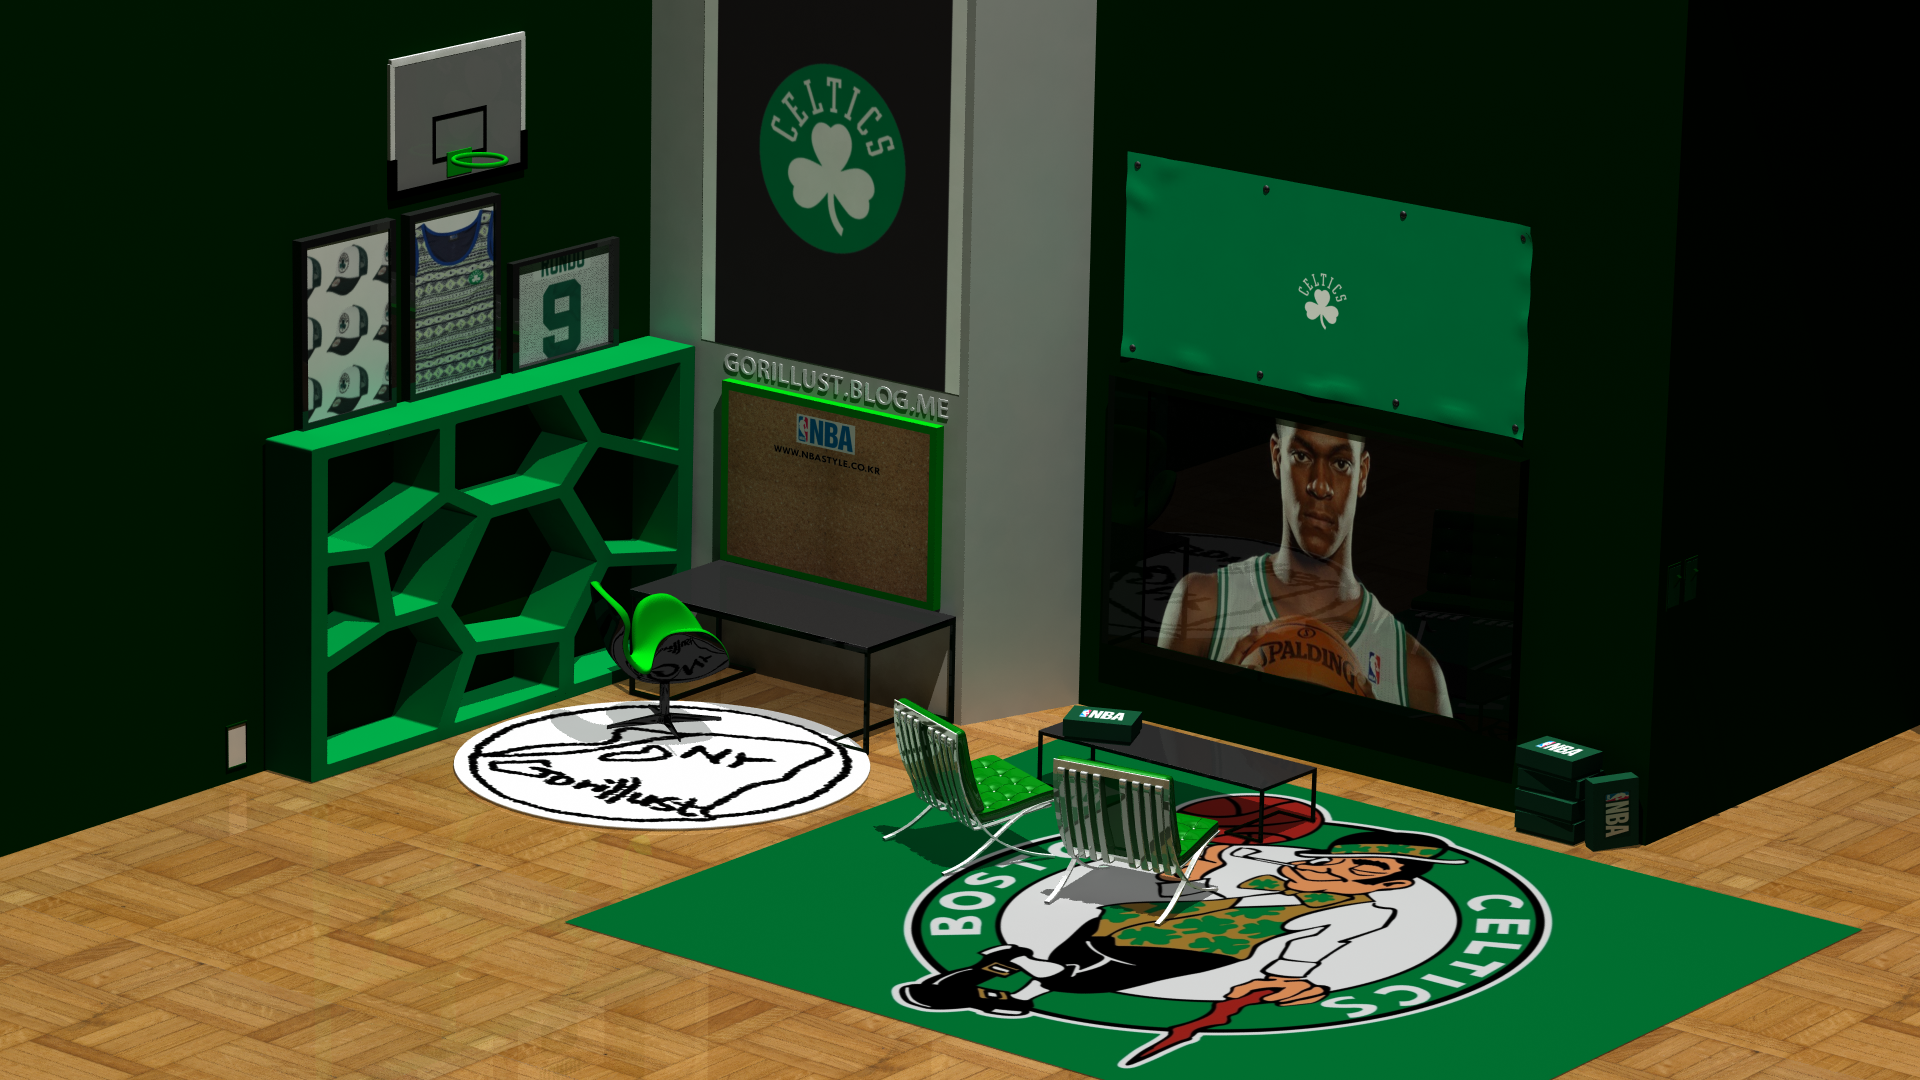 Boston-Celtics-1920-1080-Designed-by-Gorillust-wallpaper-wp3403476